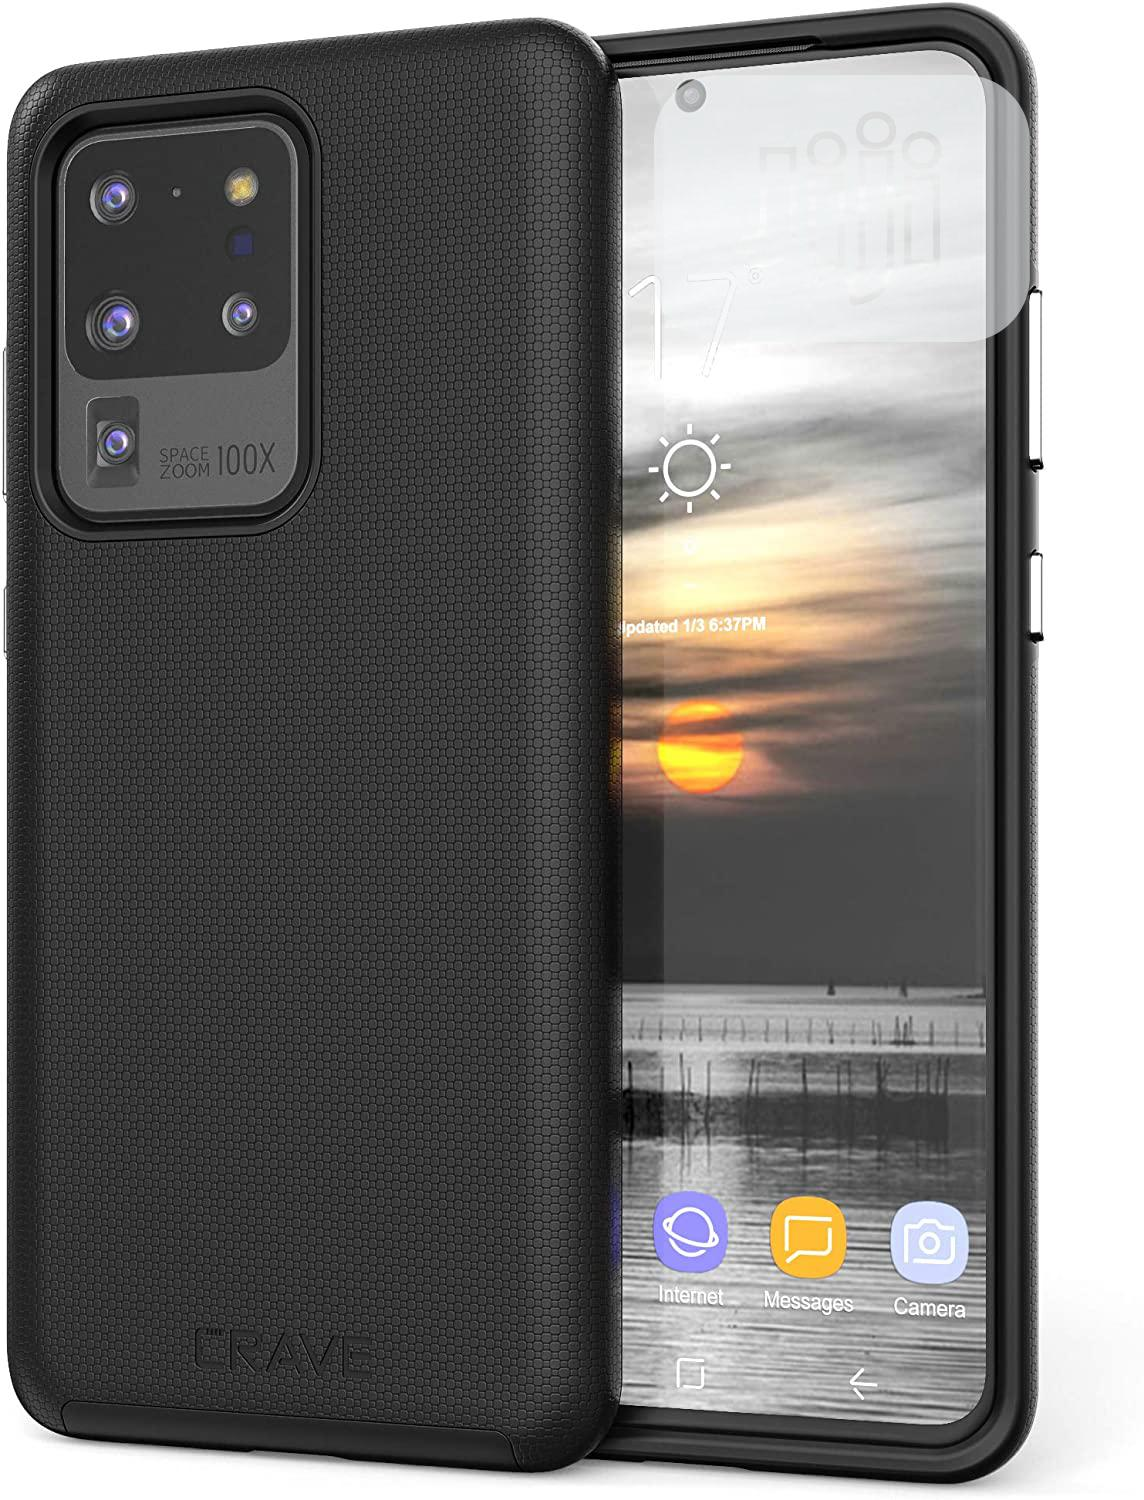 USA Crave S20 Ultra Case, Dual Guard Protection Series S20